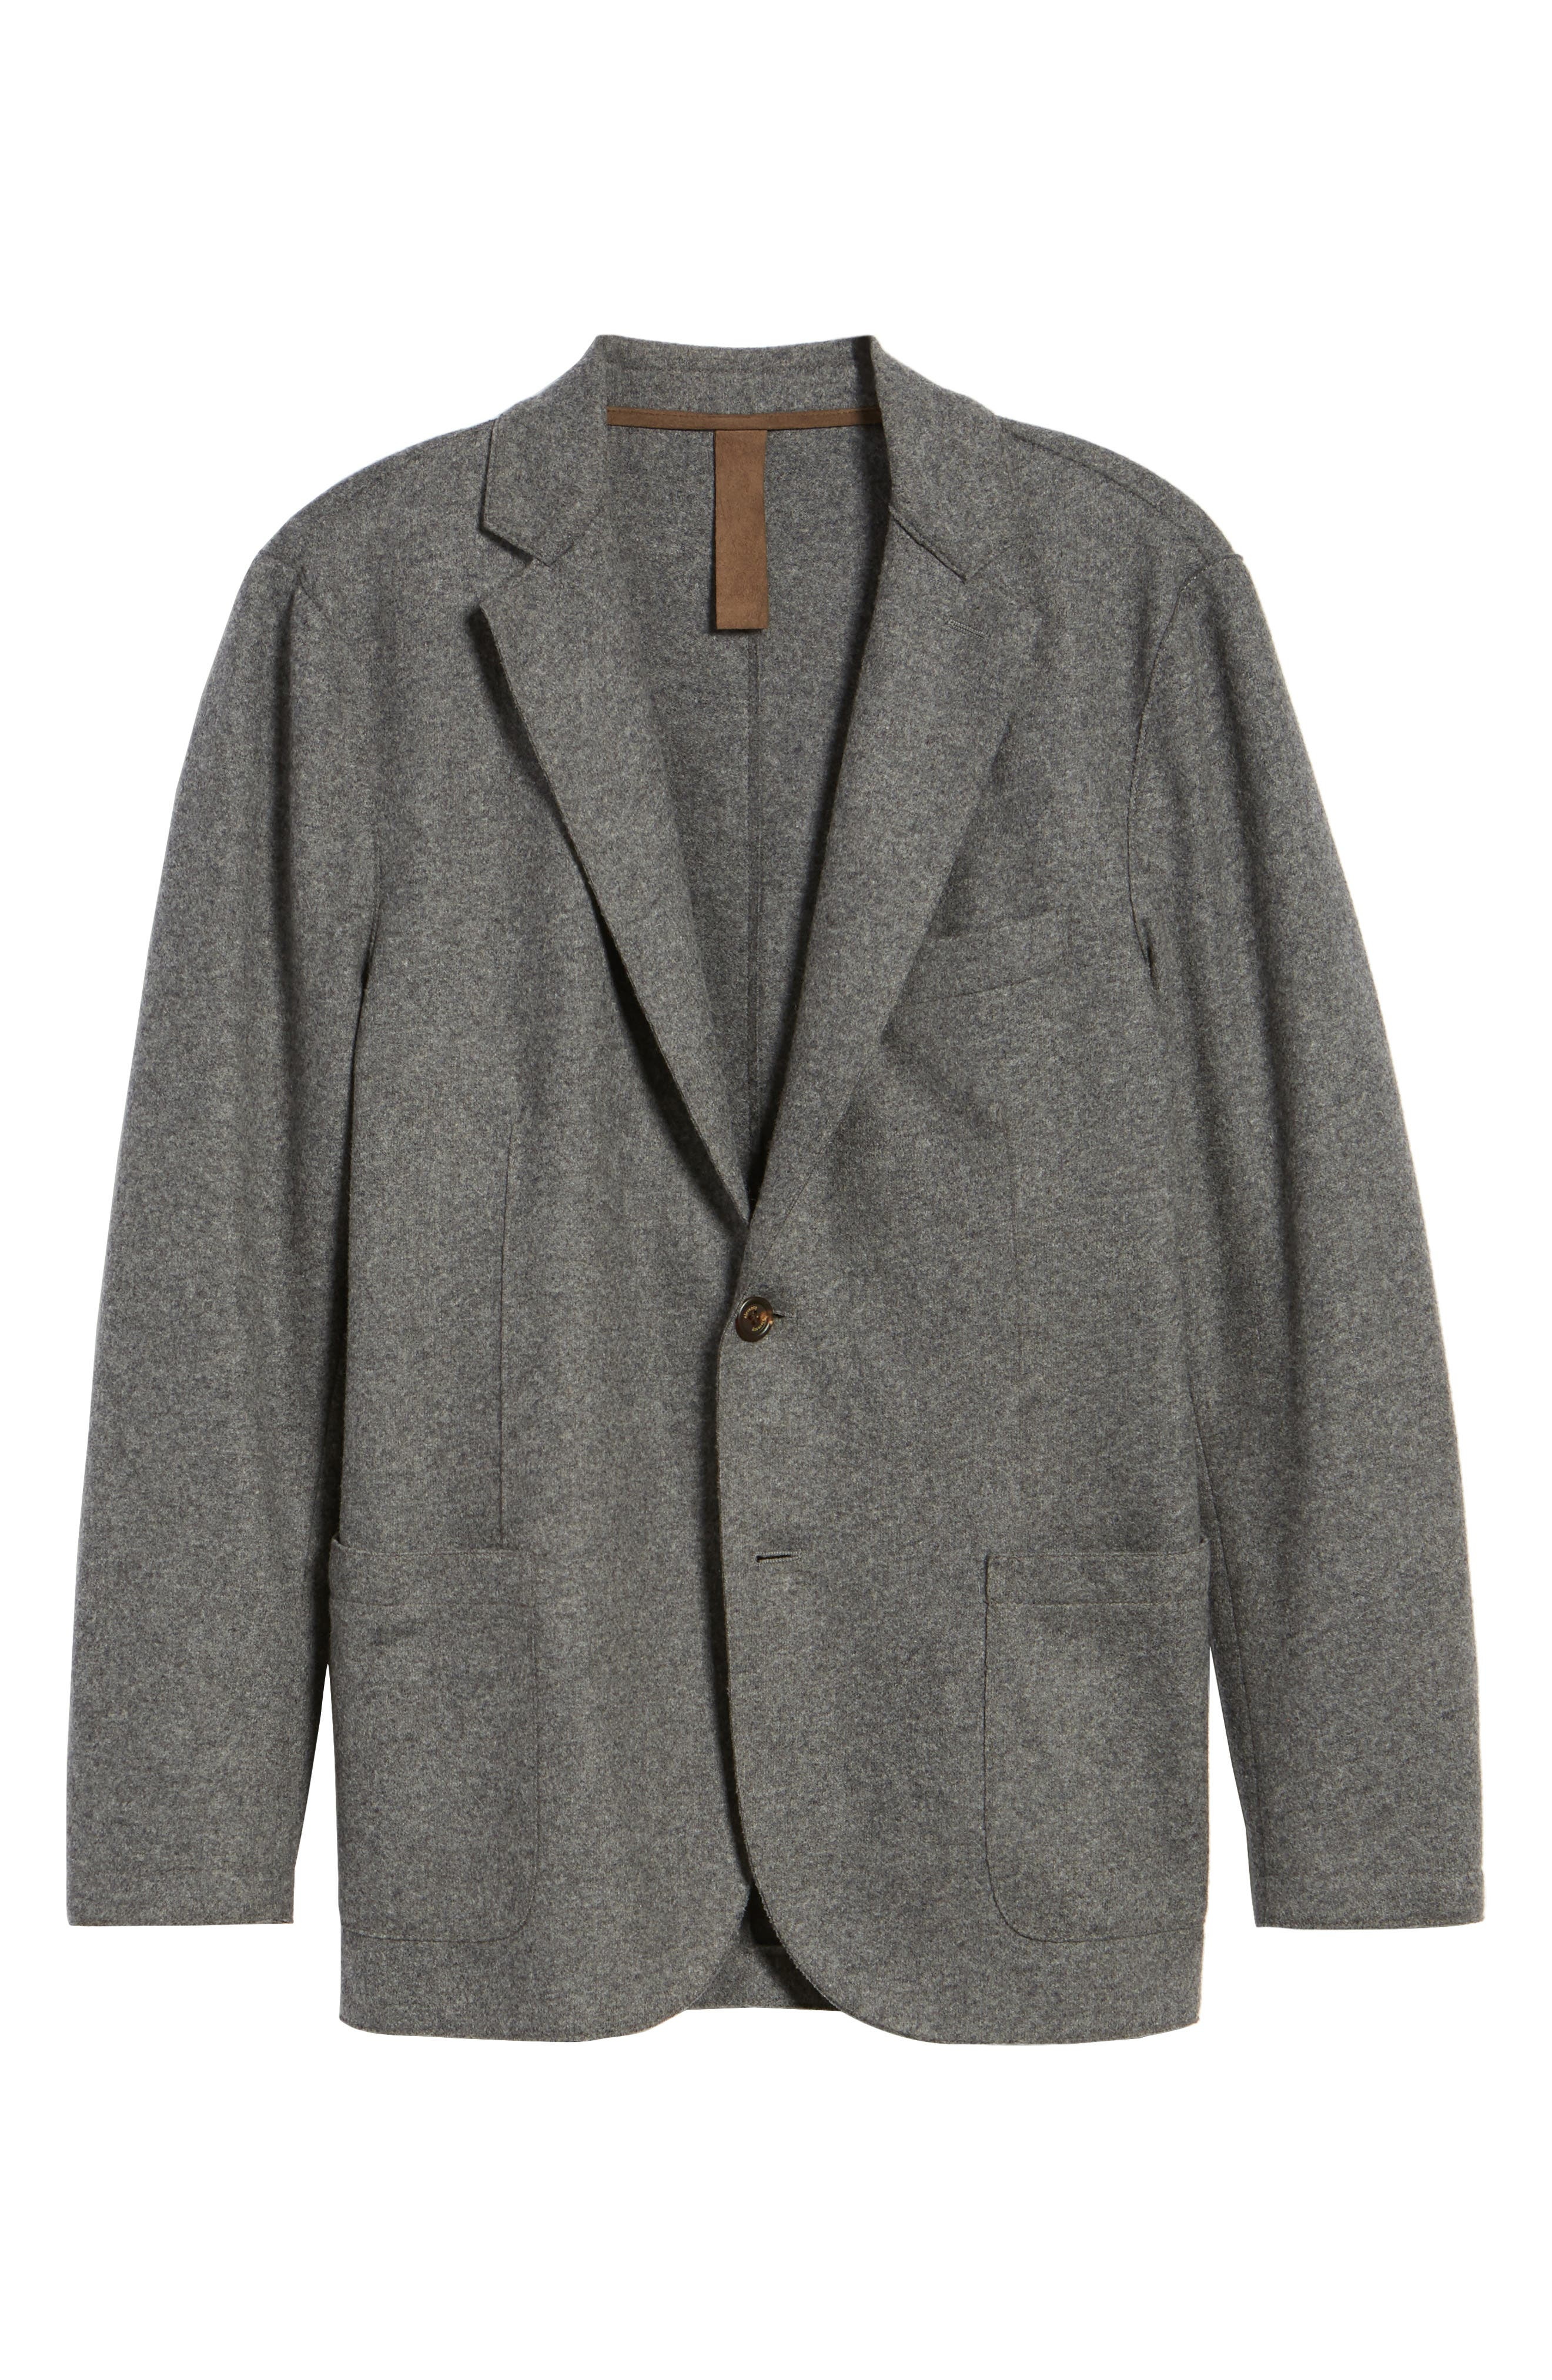 Wool Blend Blazer,                             Alternate thumbnail 6, color,                             Smoke Grey Melange